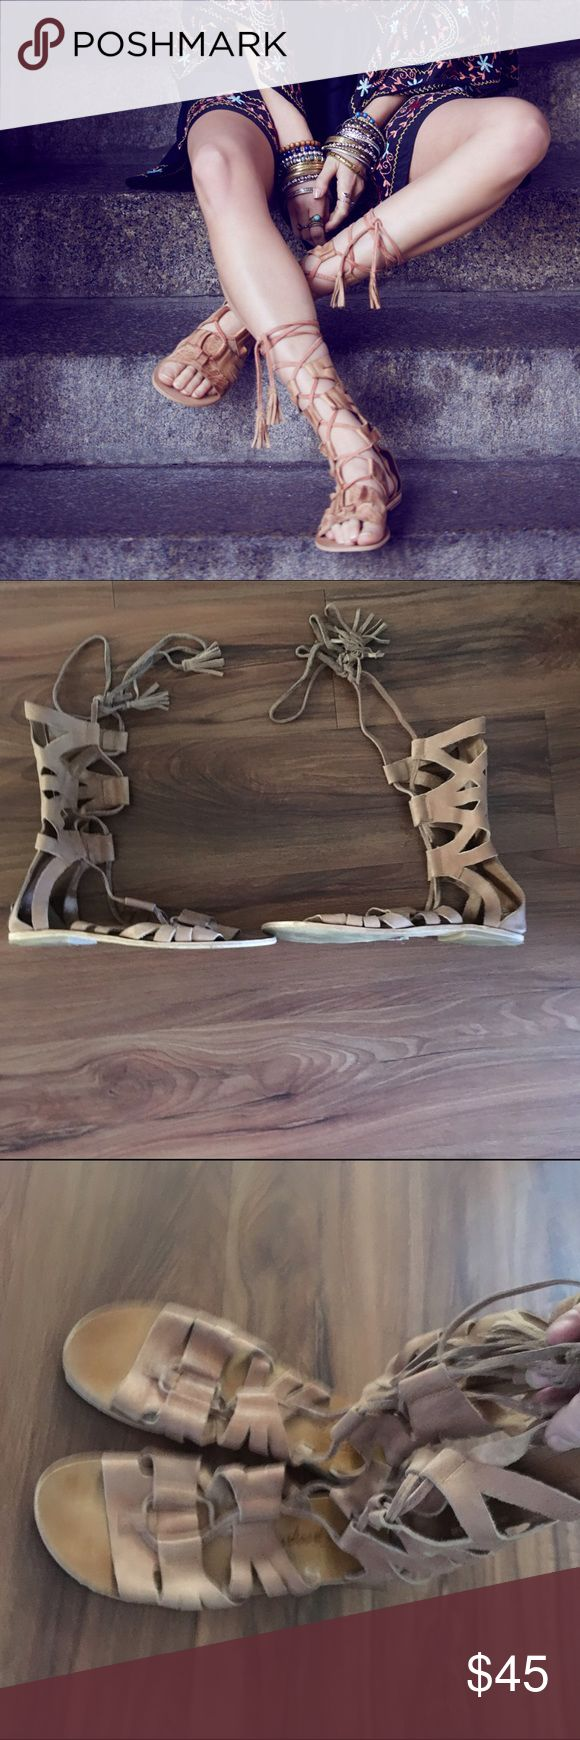 Free people mesa verde suede gladiator sandals 9 Worn only for dress by a non smoker. Size 40 or us 9. Price is firm no offers no trades Free People Shoes Sandals